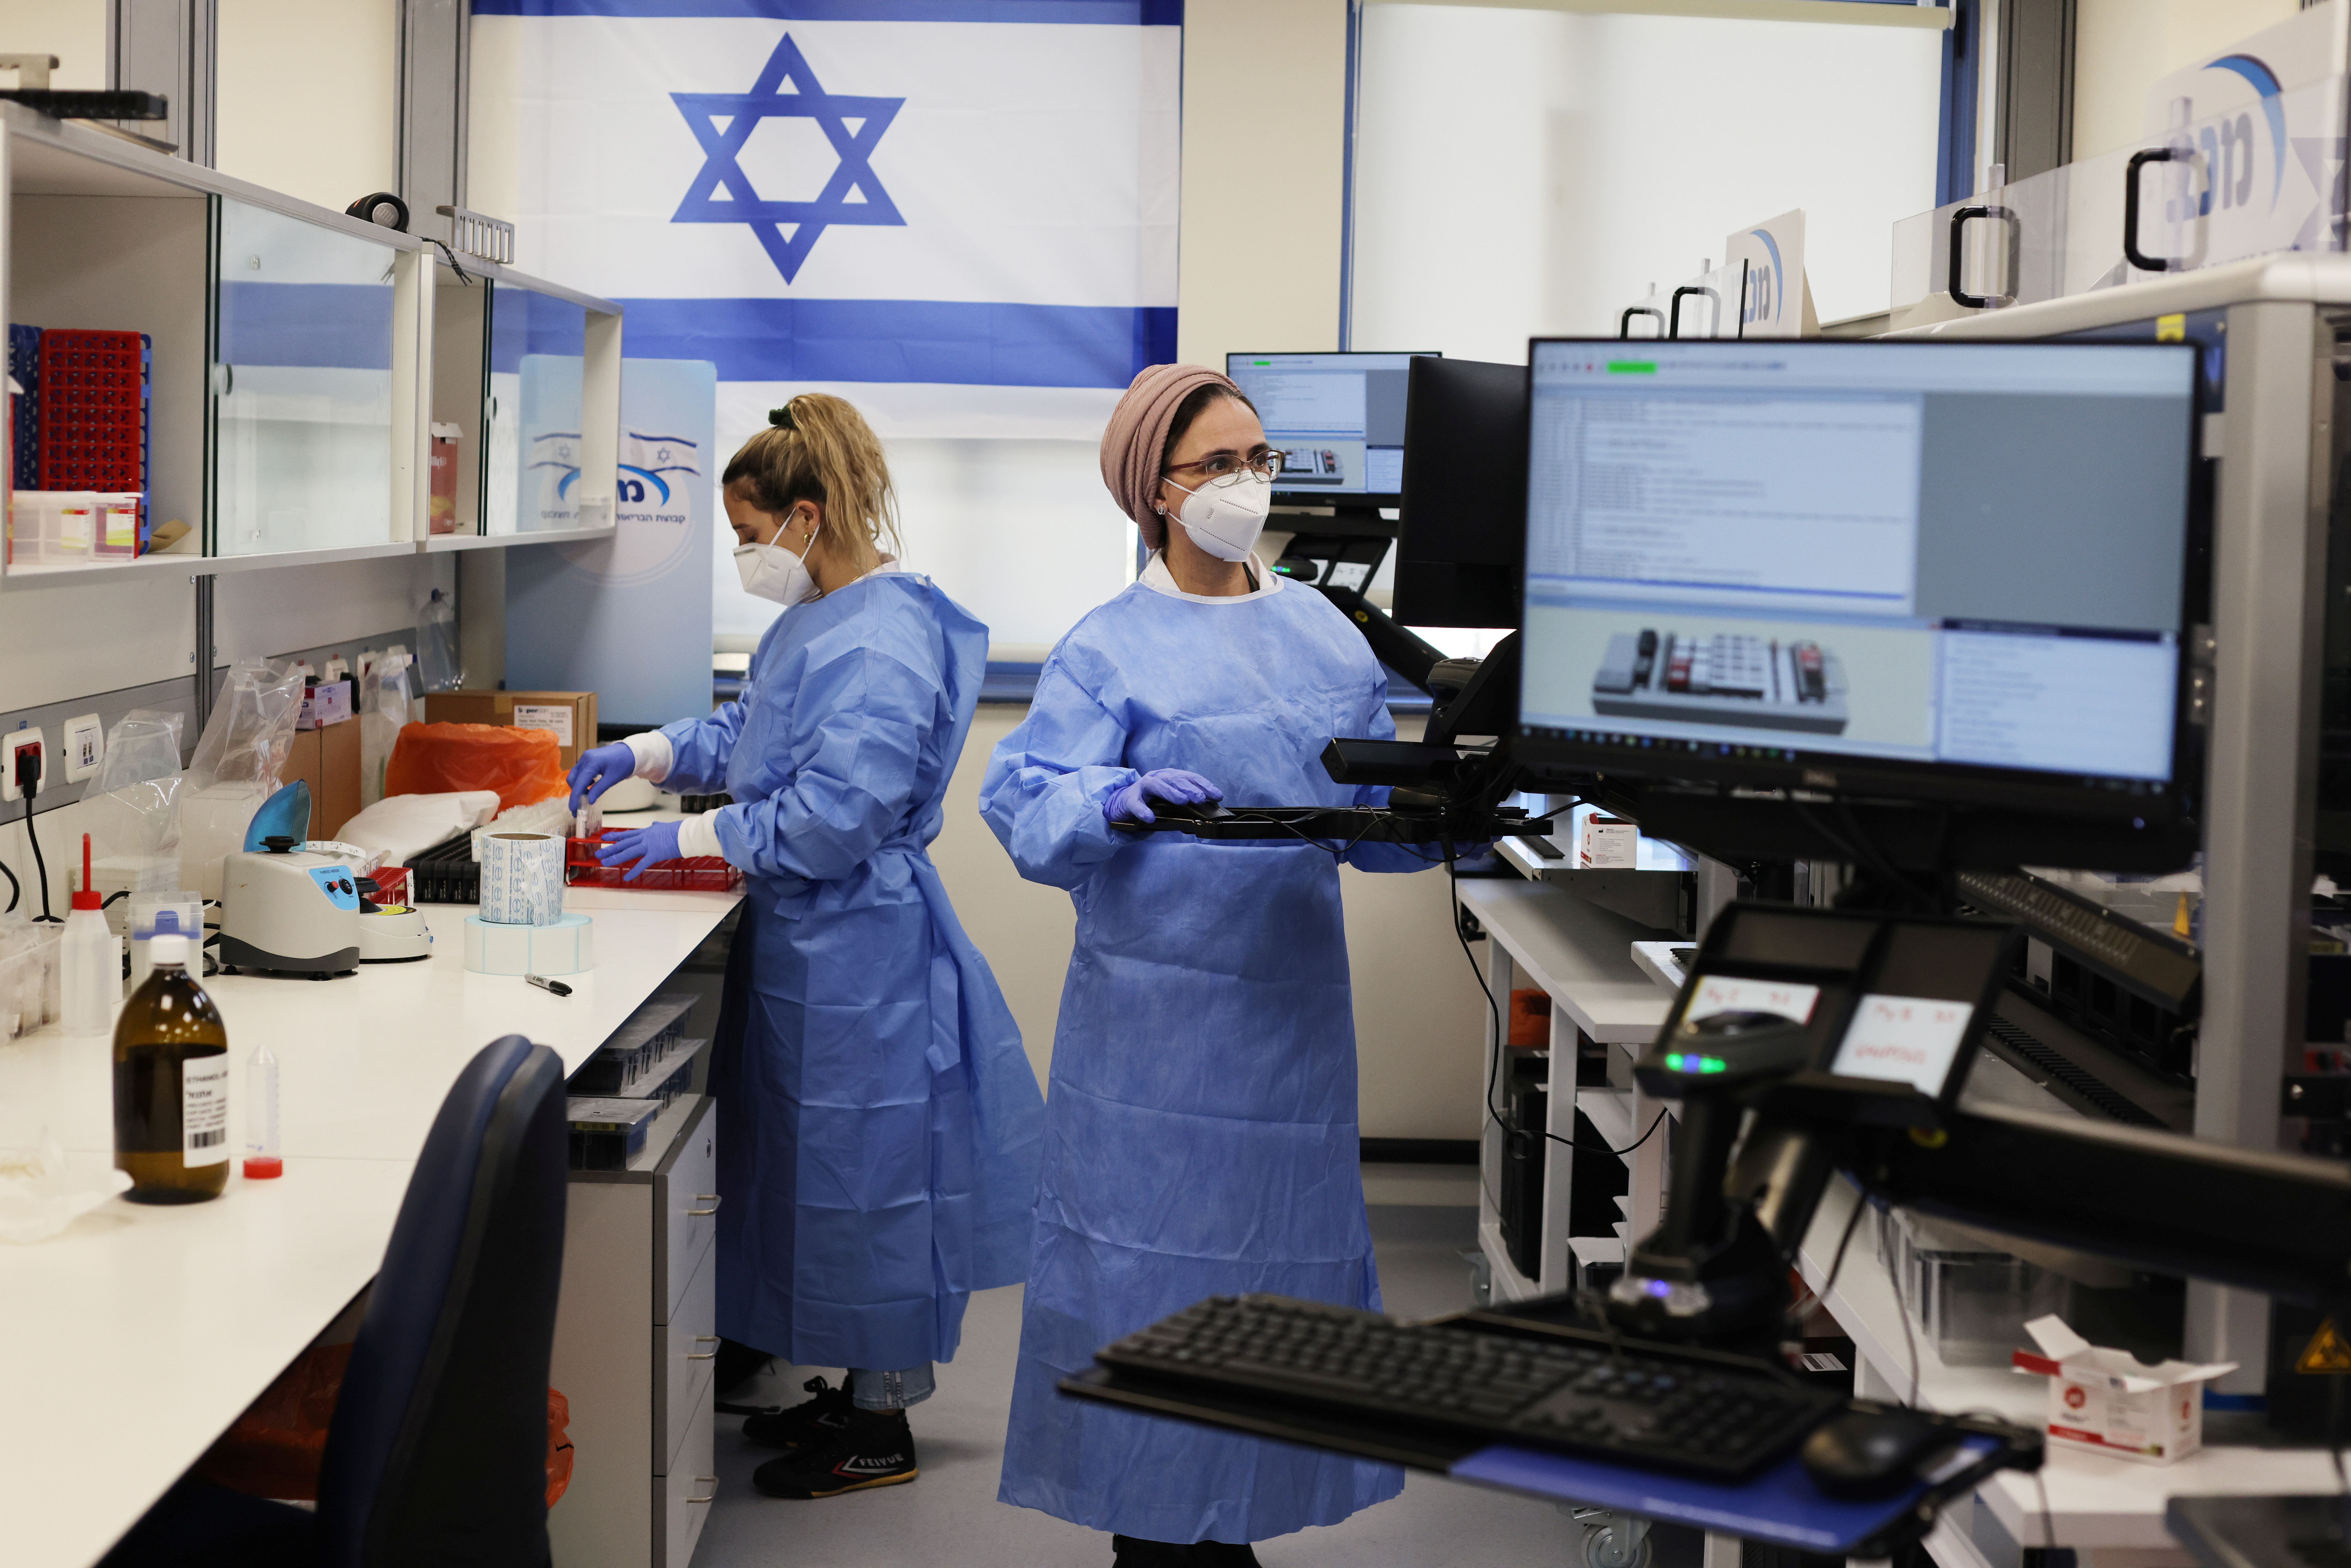 Technicians work at Healthcare Maintenance Organisation (HMO) Maccabi's coronavirus disease (COVID-19) public laboratory, performing diverse and numerous tests, in Rehovot, Israel February 9, 2021. REUTERS/Ammar Awad